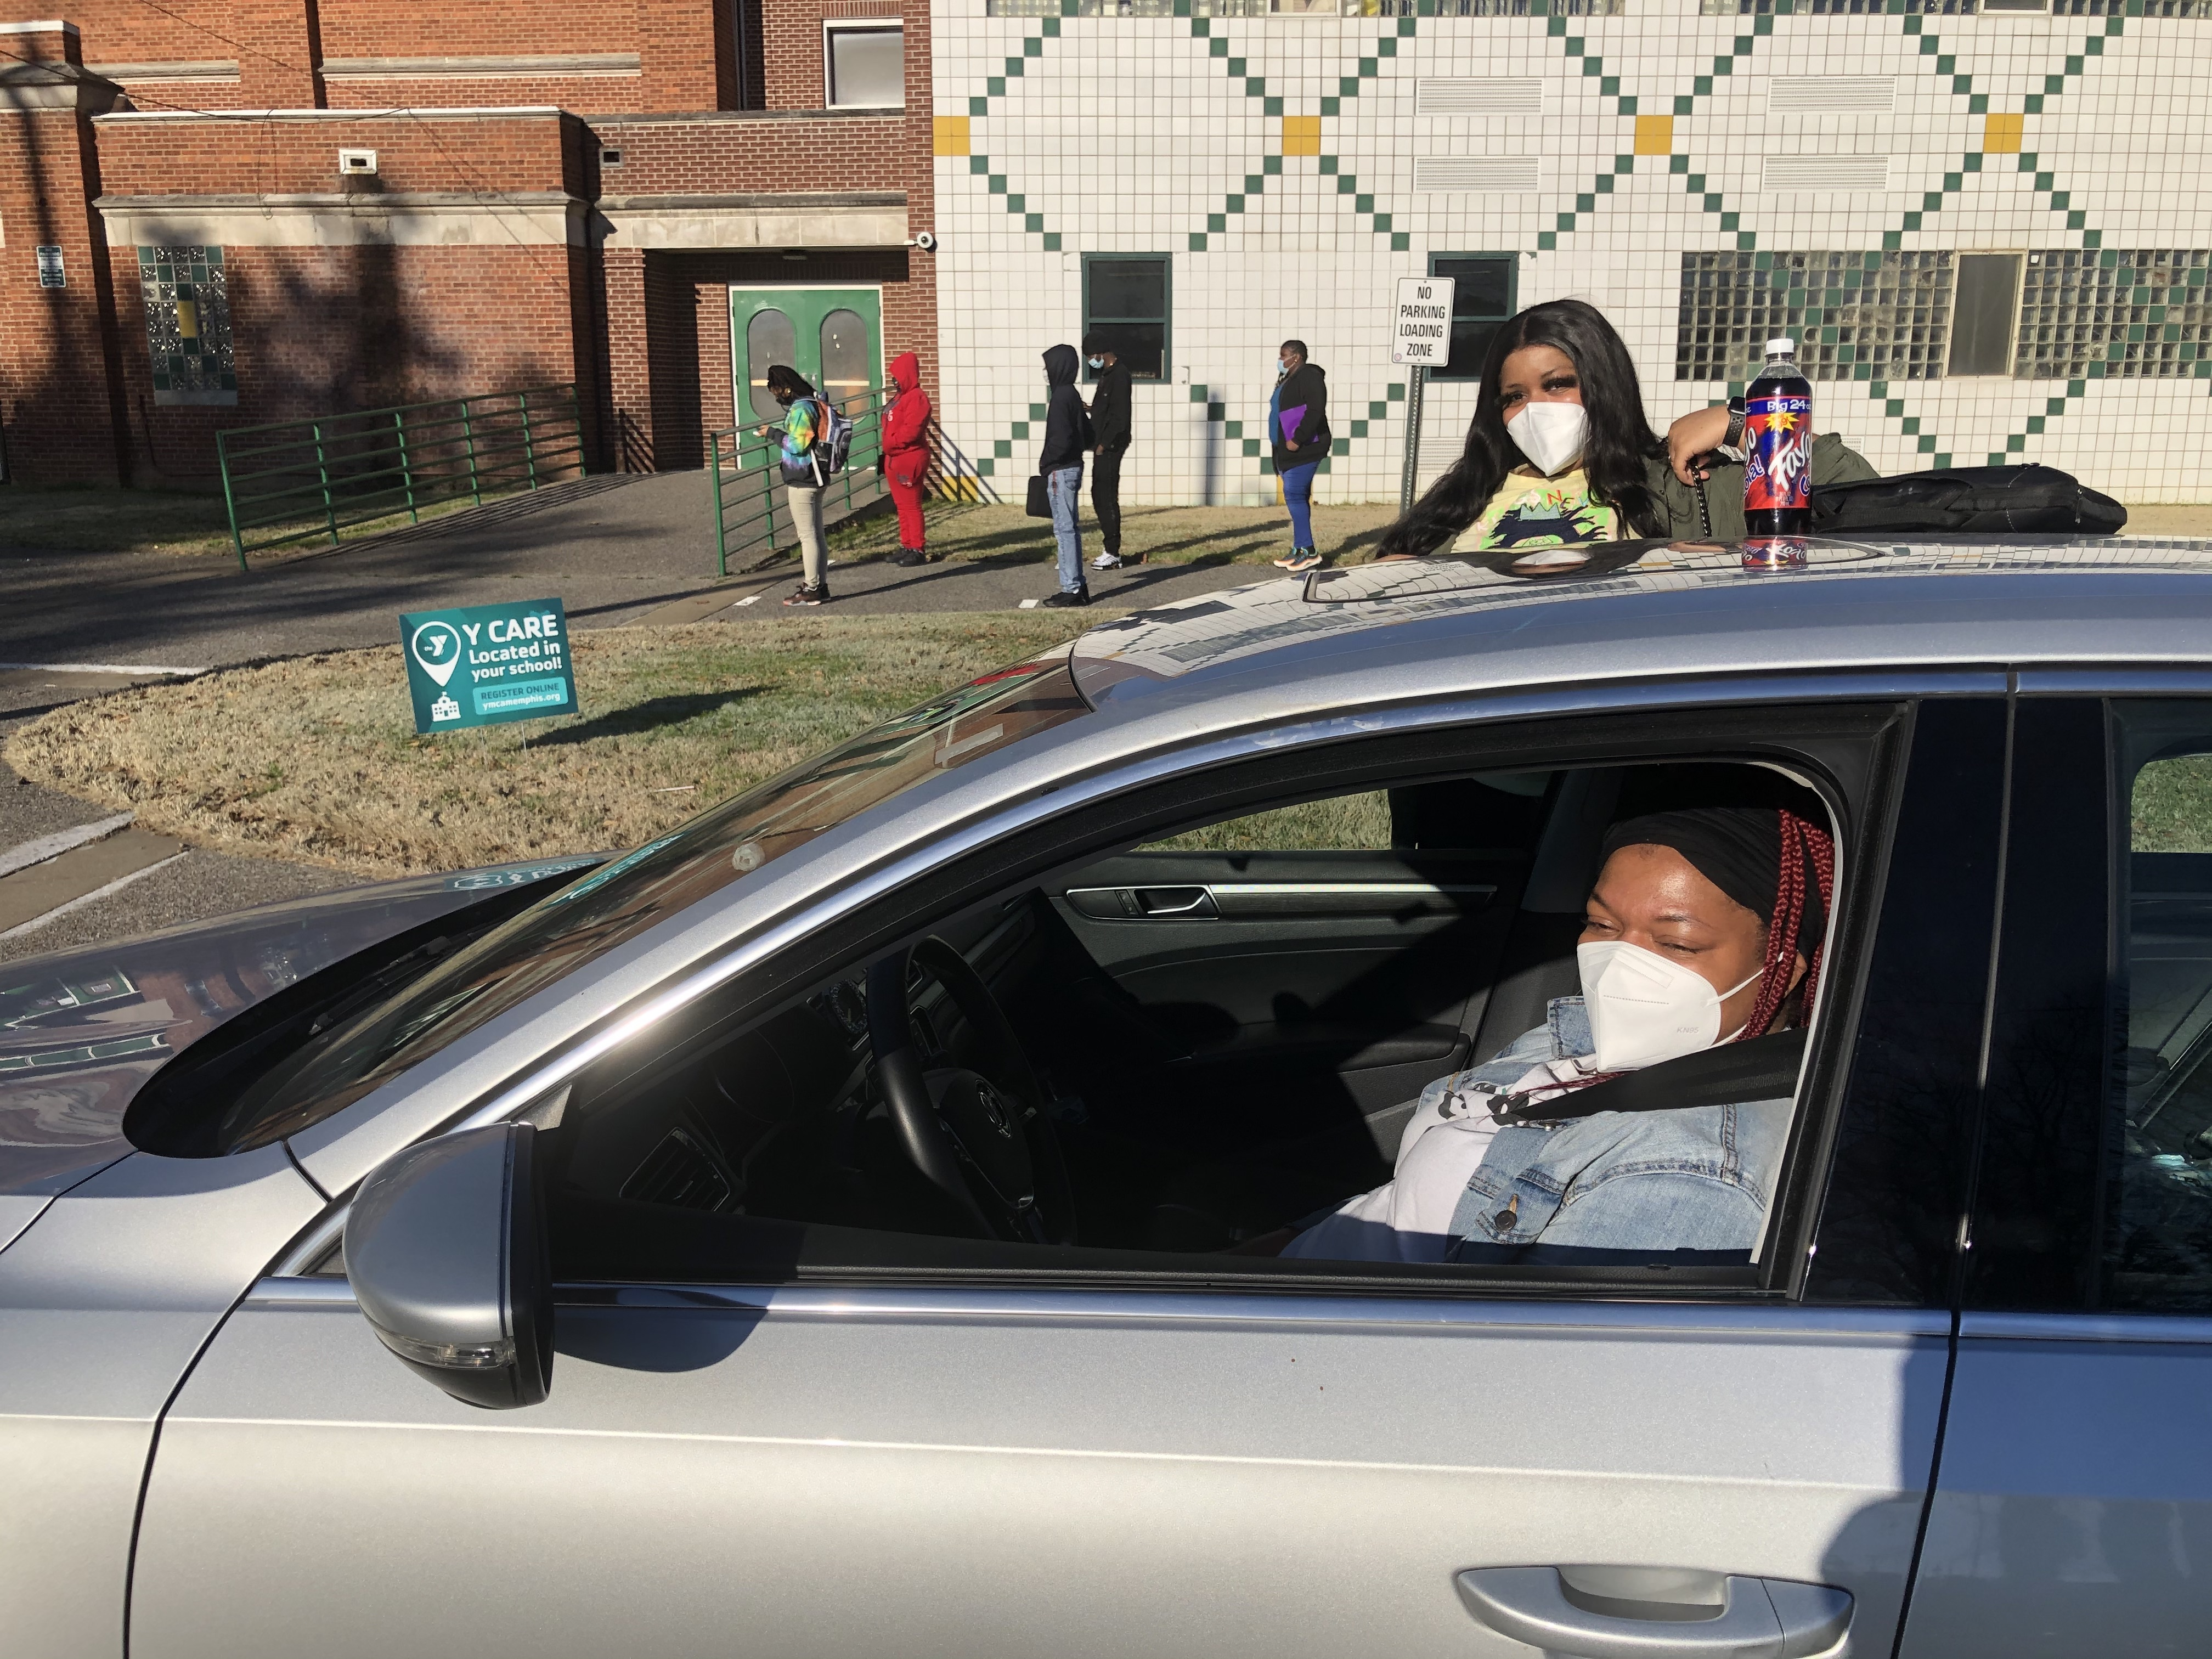 A masked parent in the driver's seat of a car and her masked daughter exiting the car in front of the school, as students stand apart in line to enter the building.